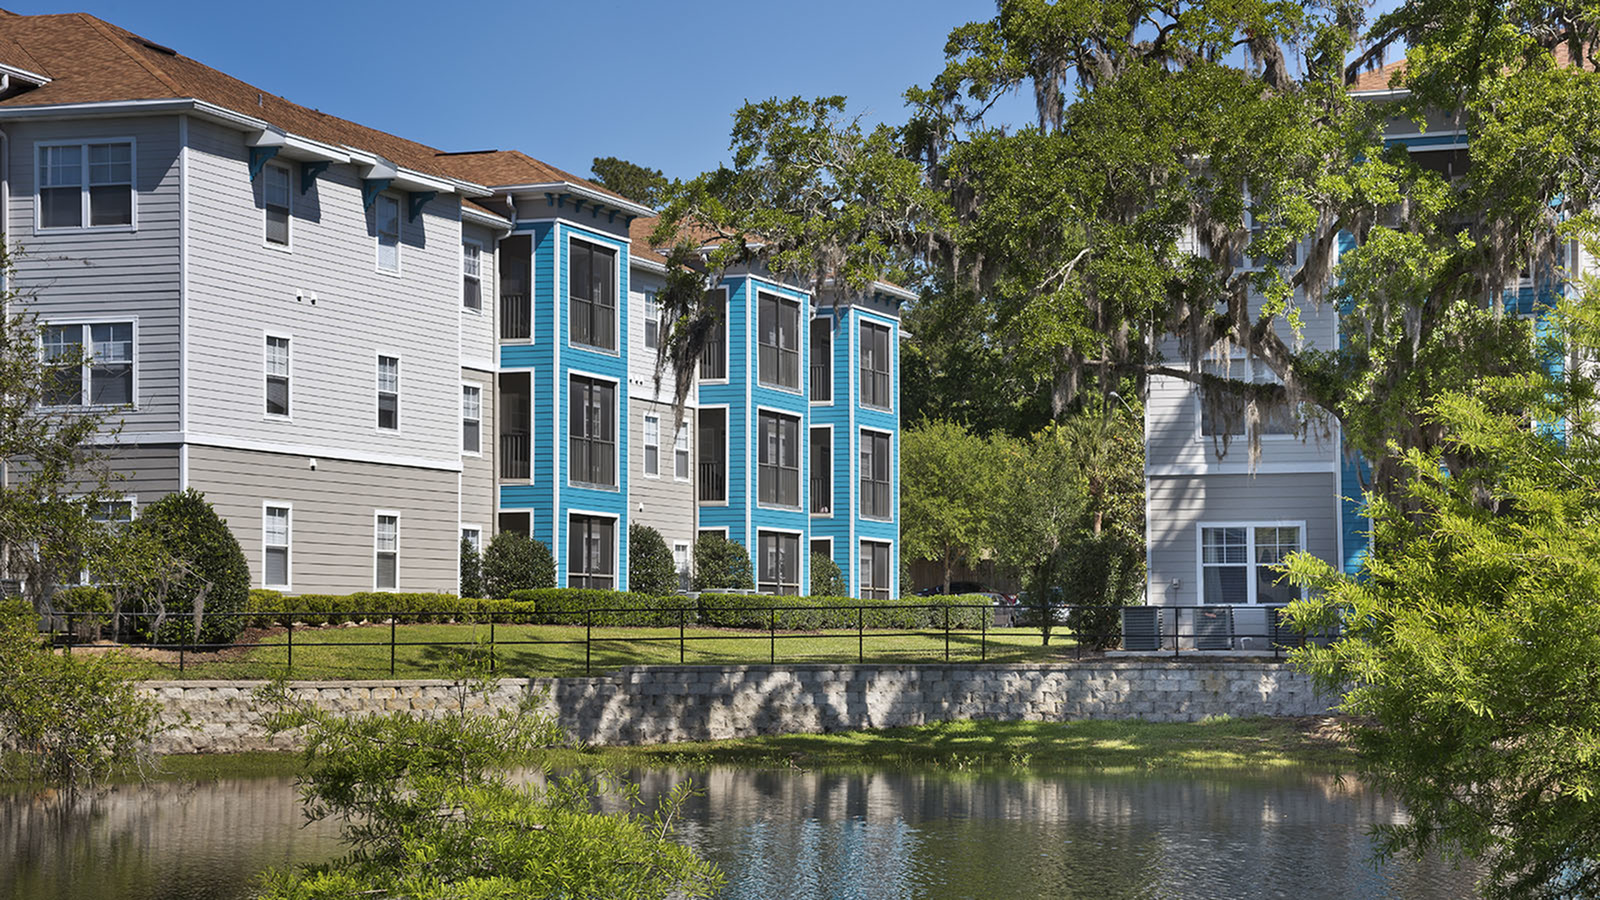 The enclave apartments gainesville fl - 3 bedroom apartments in gainesville fl ...